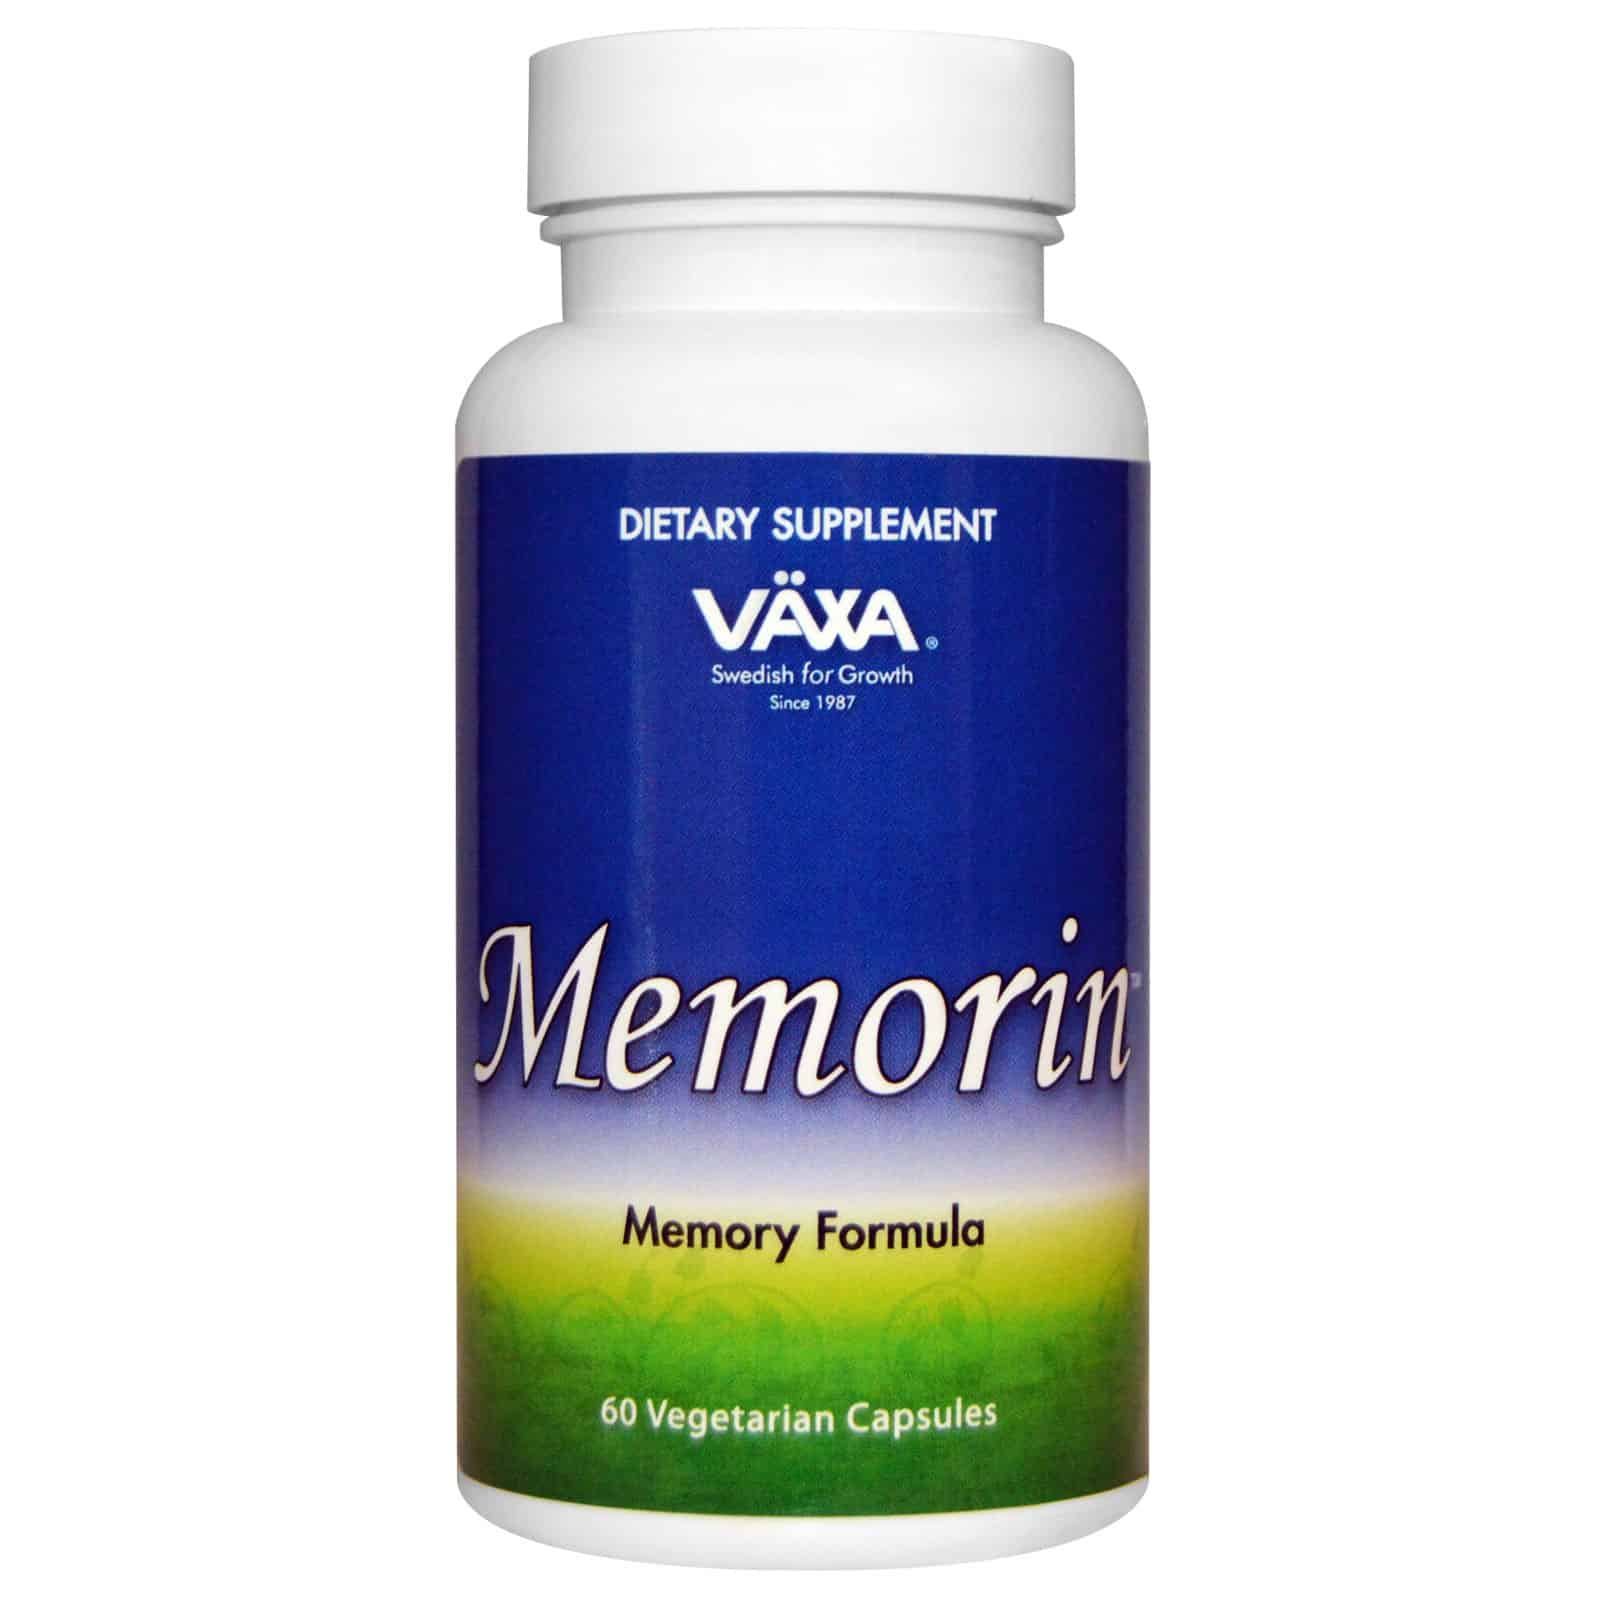 vaxa memorin Reviews